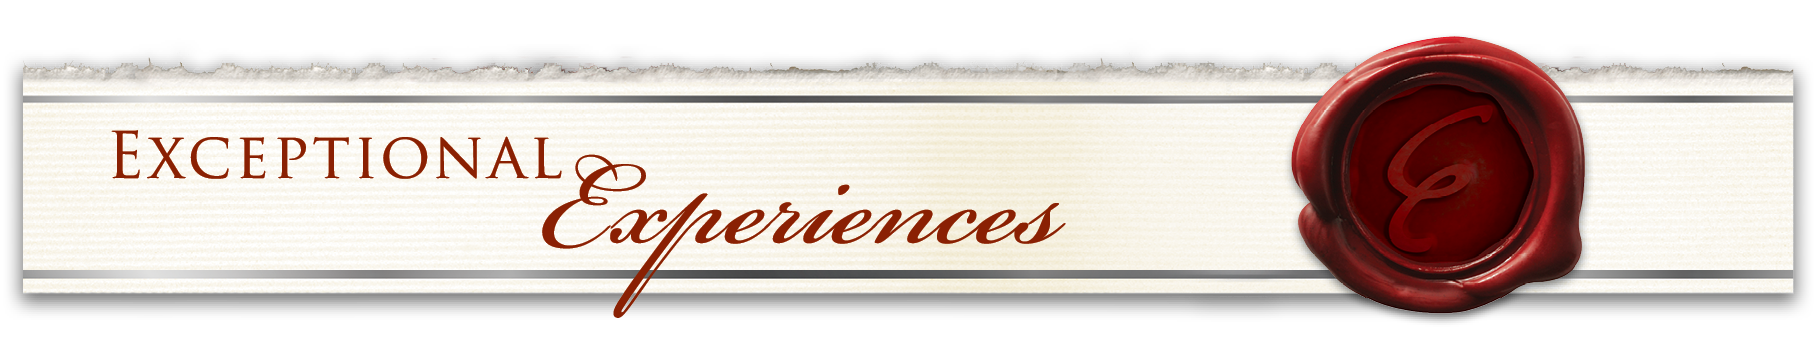 Exceptional-Experiences